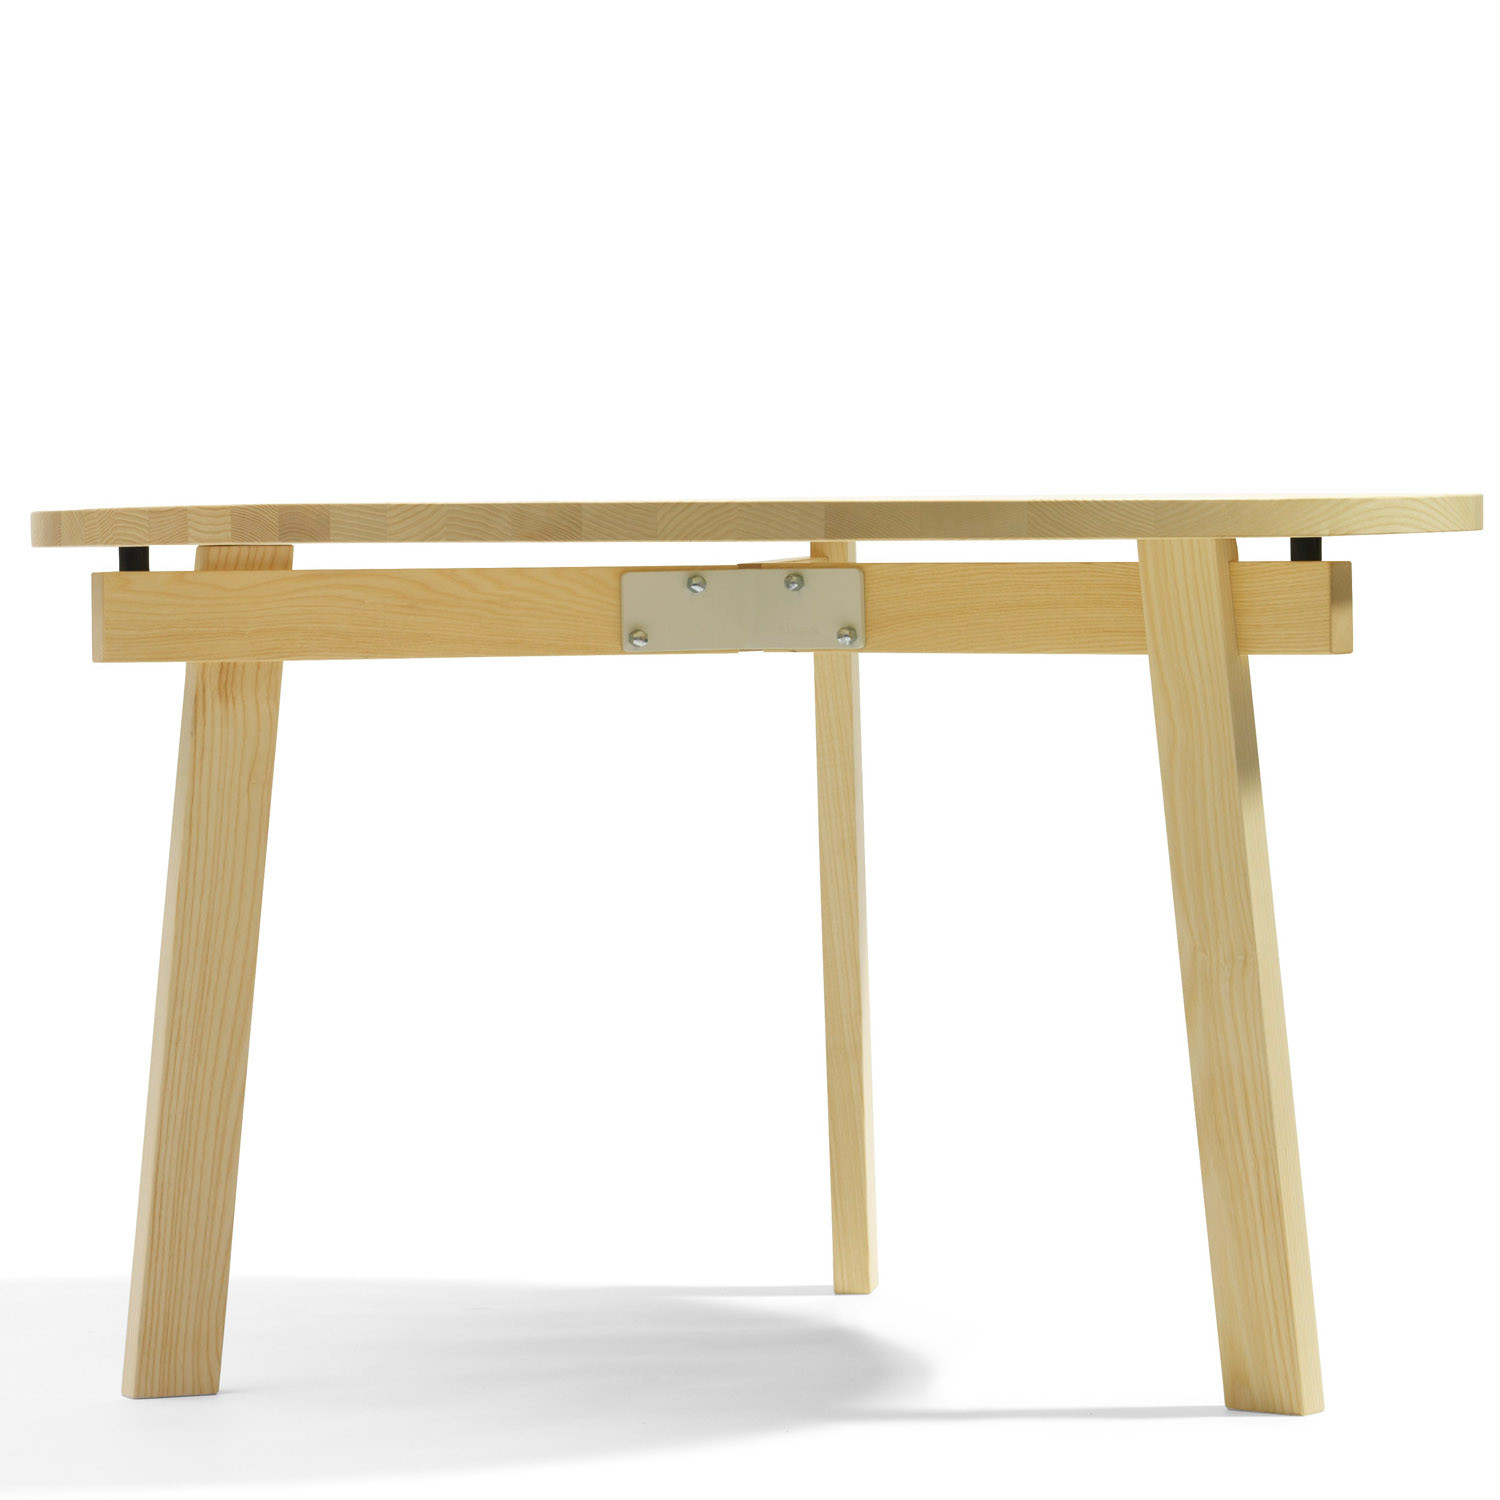 Size L904 Rectangular Table by Bla Station